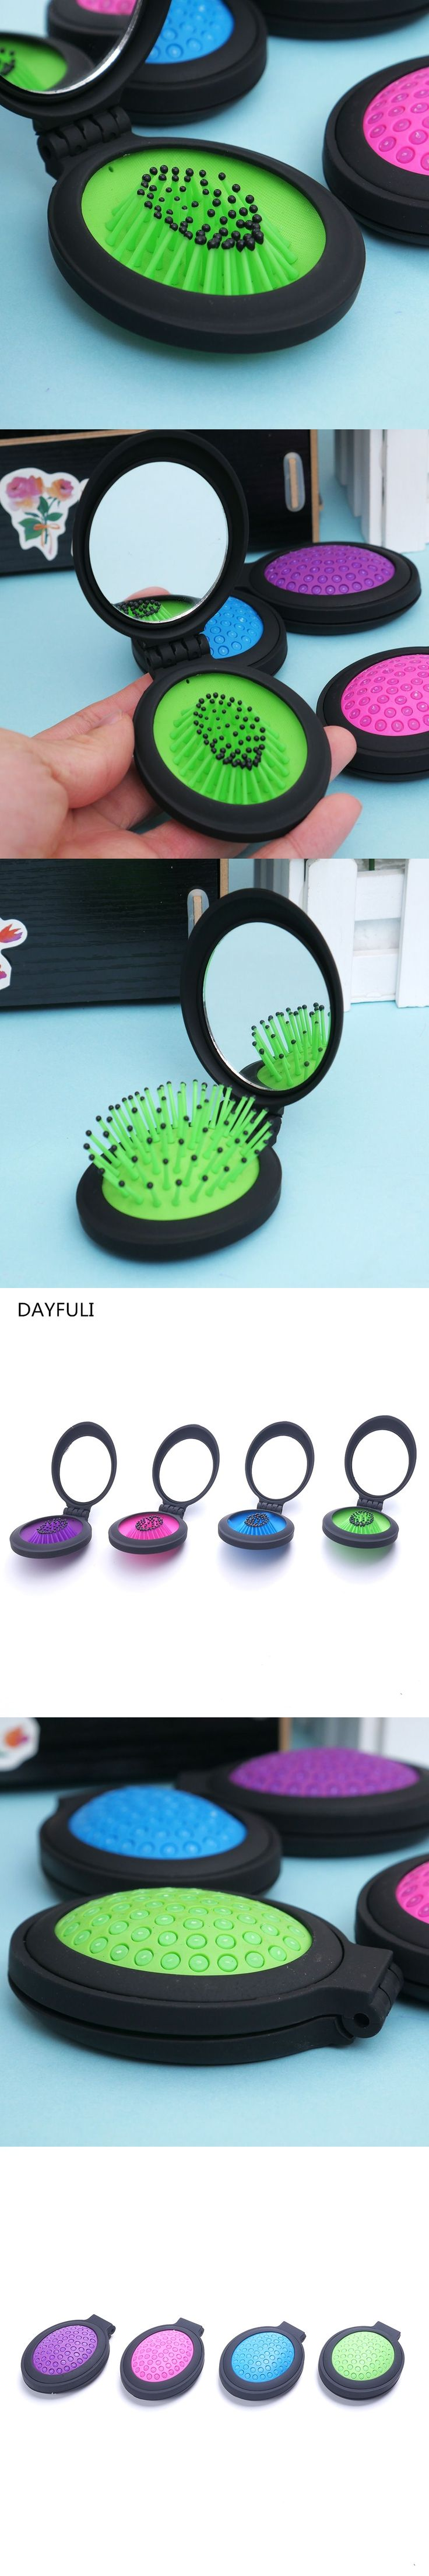 1 Pcs Girls Portable Mini Mirror Folding Comb Airbag Massage Round Hair brush